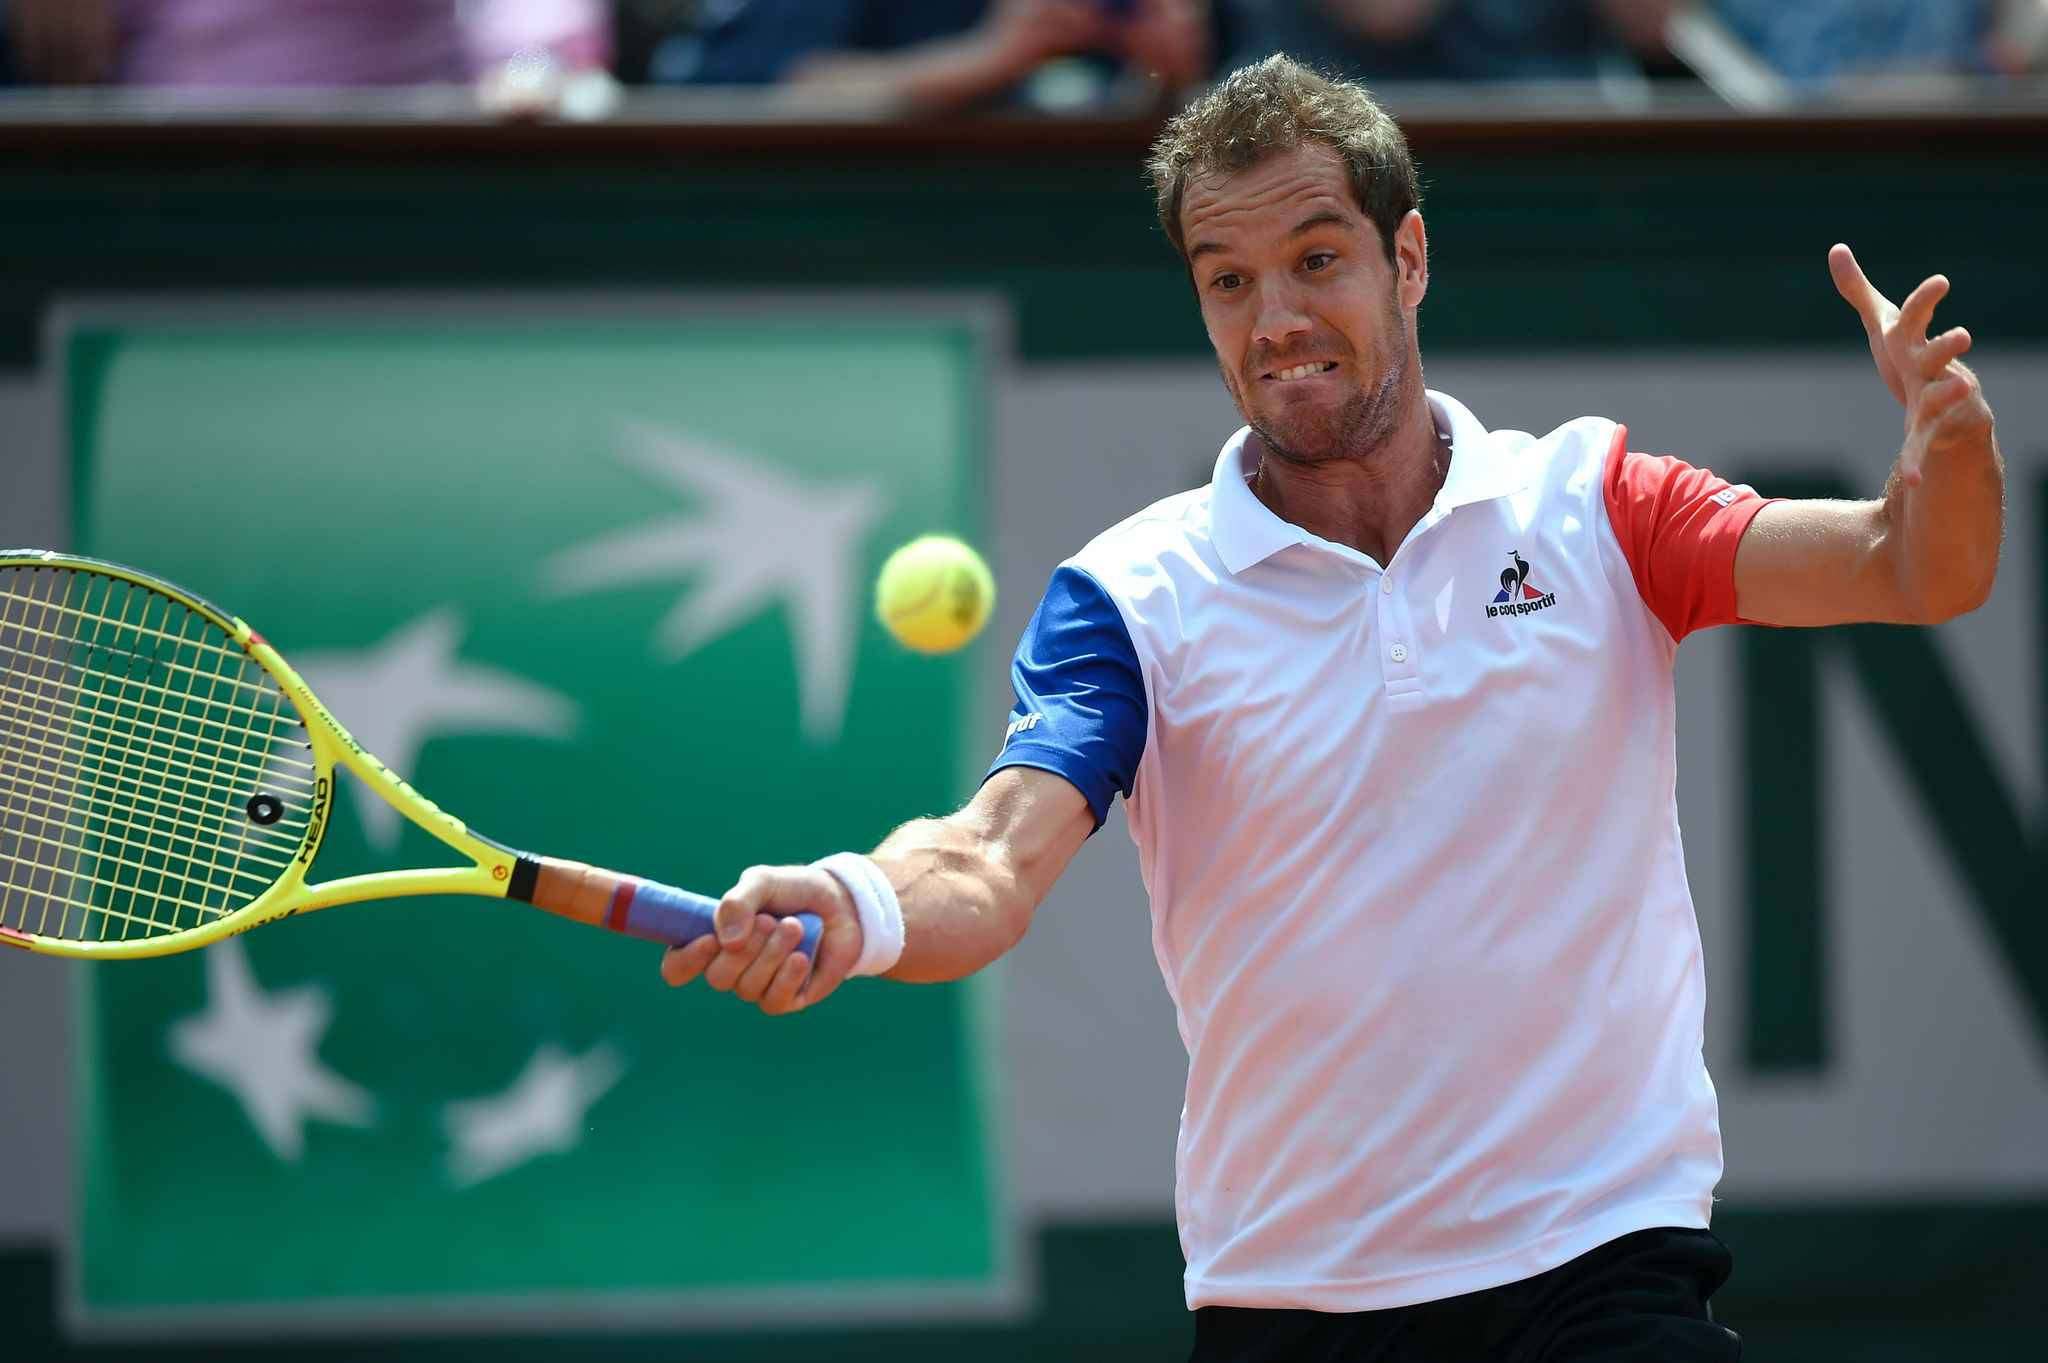 gasquet chat Paris (ap) — one has become one of tennis' biggest stars, the other a perennial underachieverwhen rafael nadal takes on richard gasquet in the third round of the french open, it will be a.